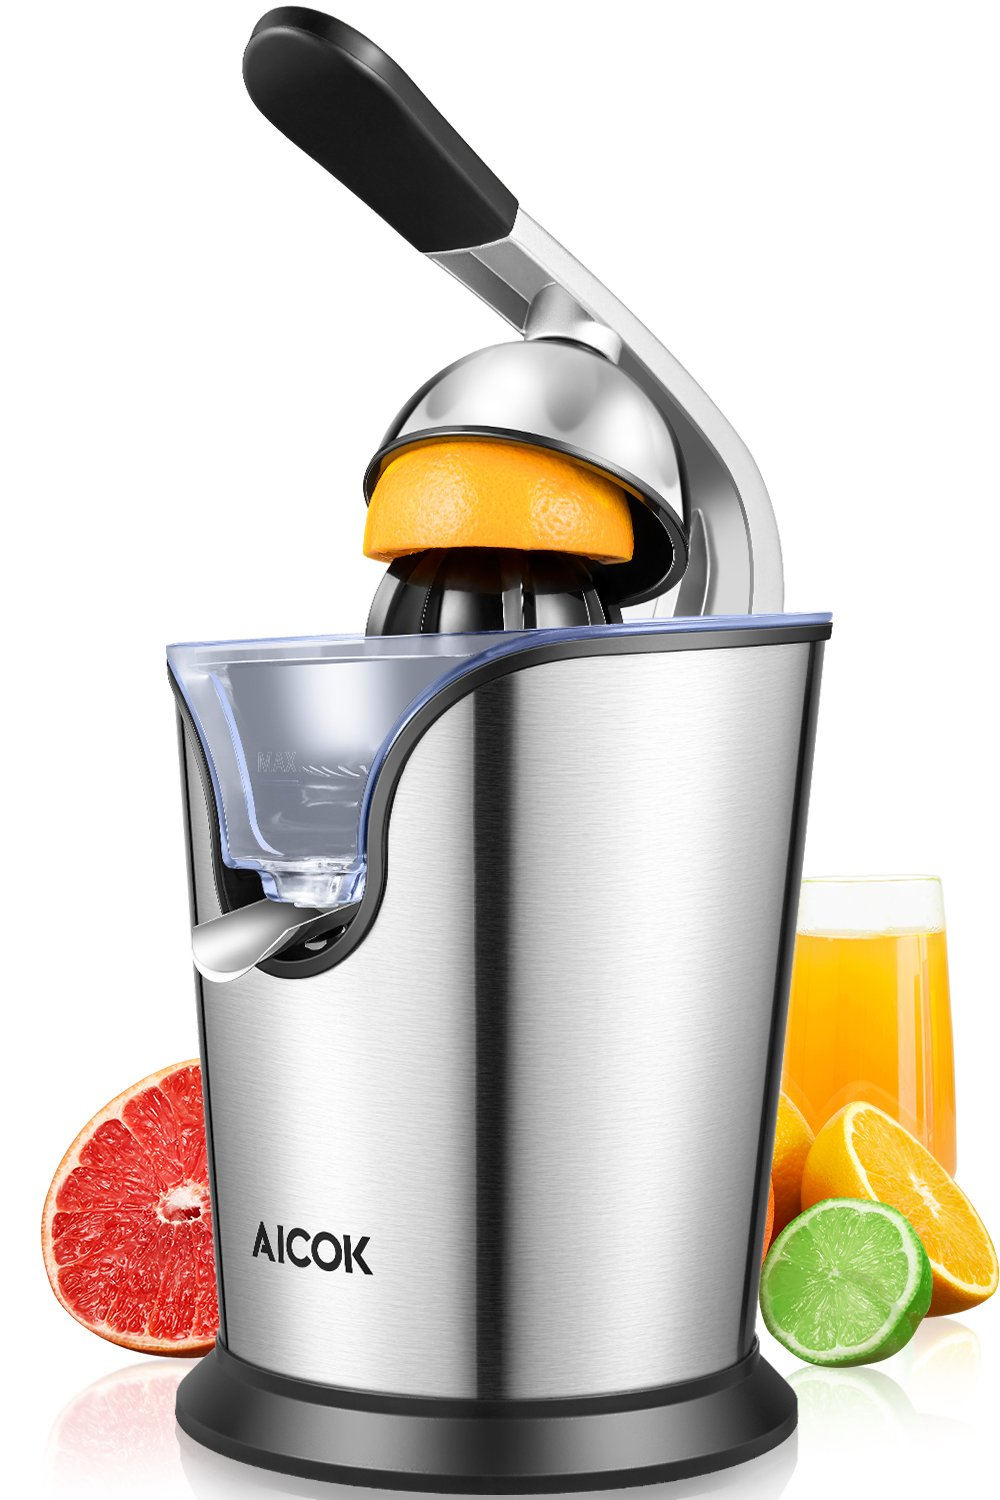 Amazon.com: Aicok Citrus Juicer Electric 160W (Upgraded) Stainless Steel Orange Juicer Squeezer with Soft Grip Handle and Anti-drip Citrus Press for Orange, ...